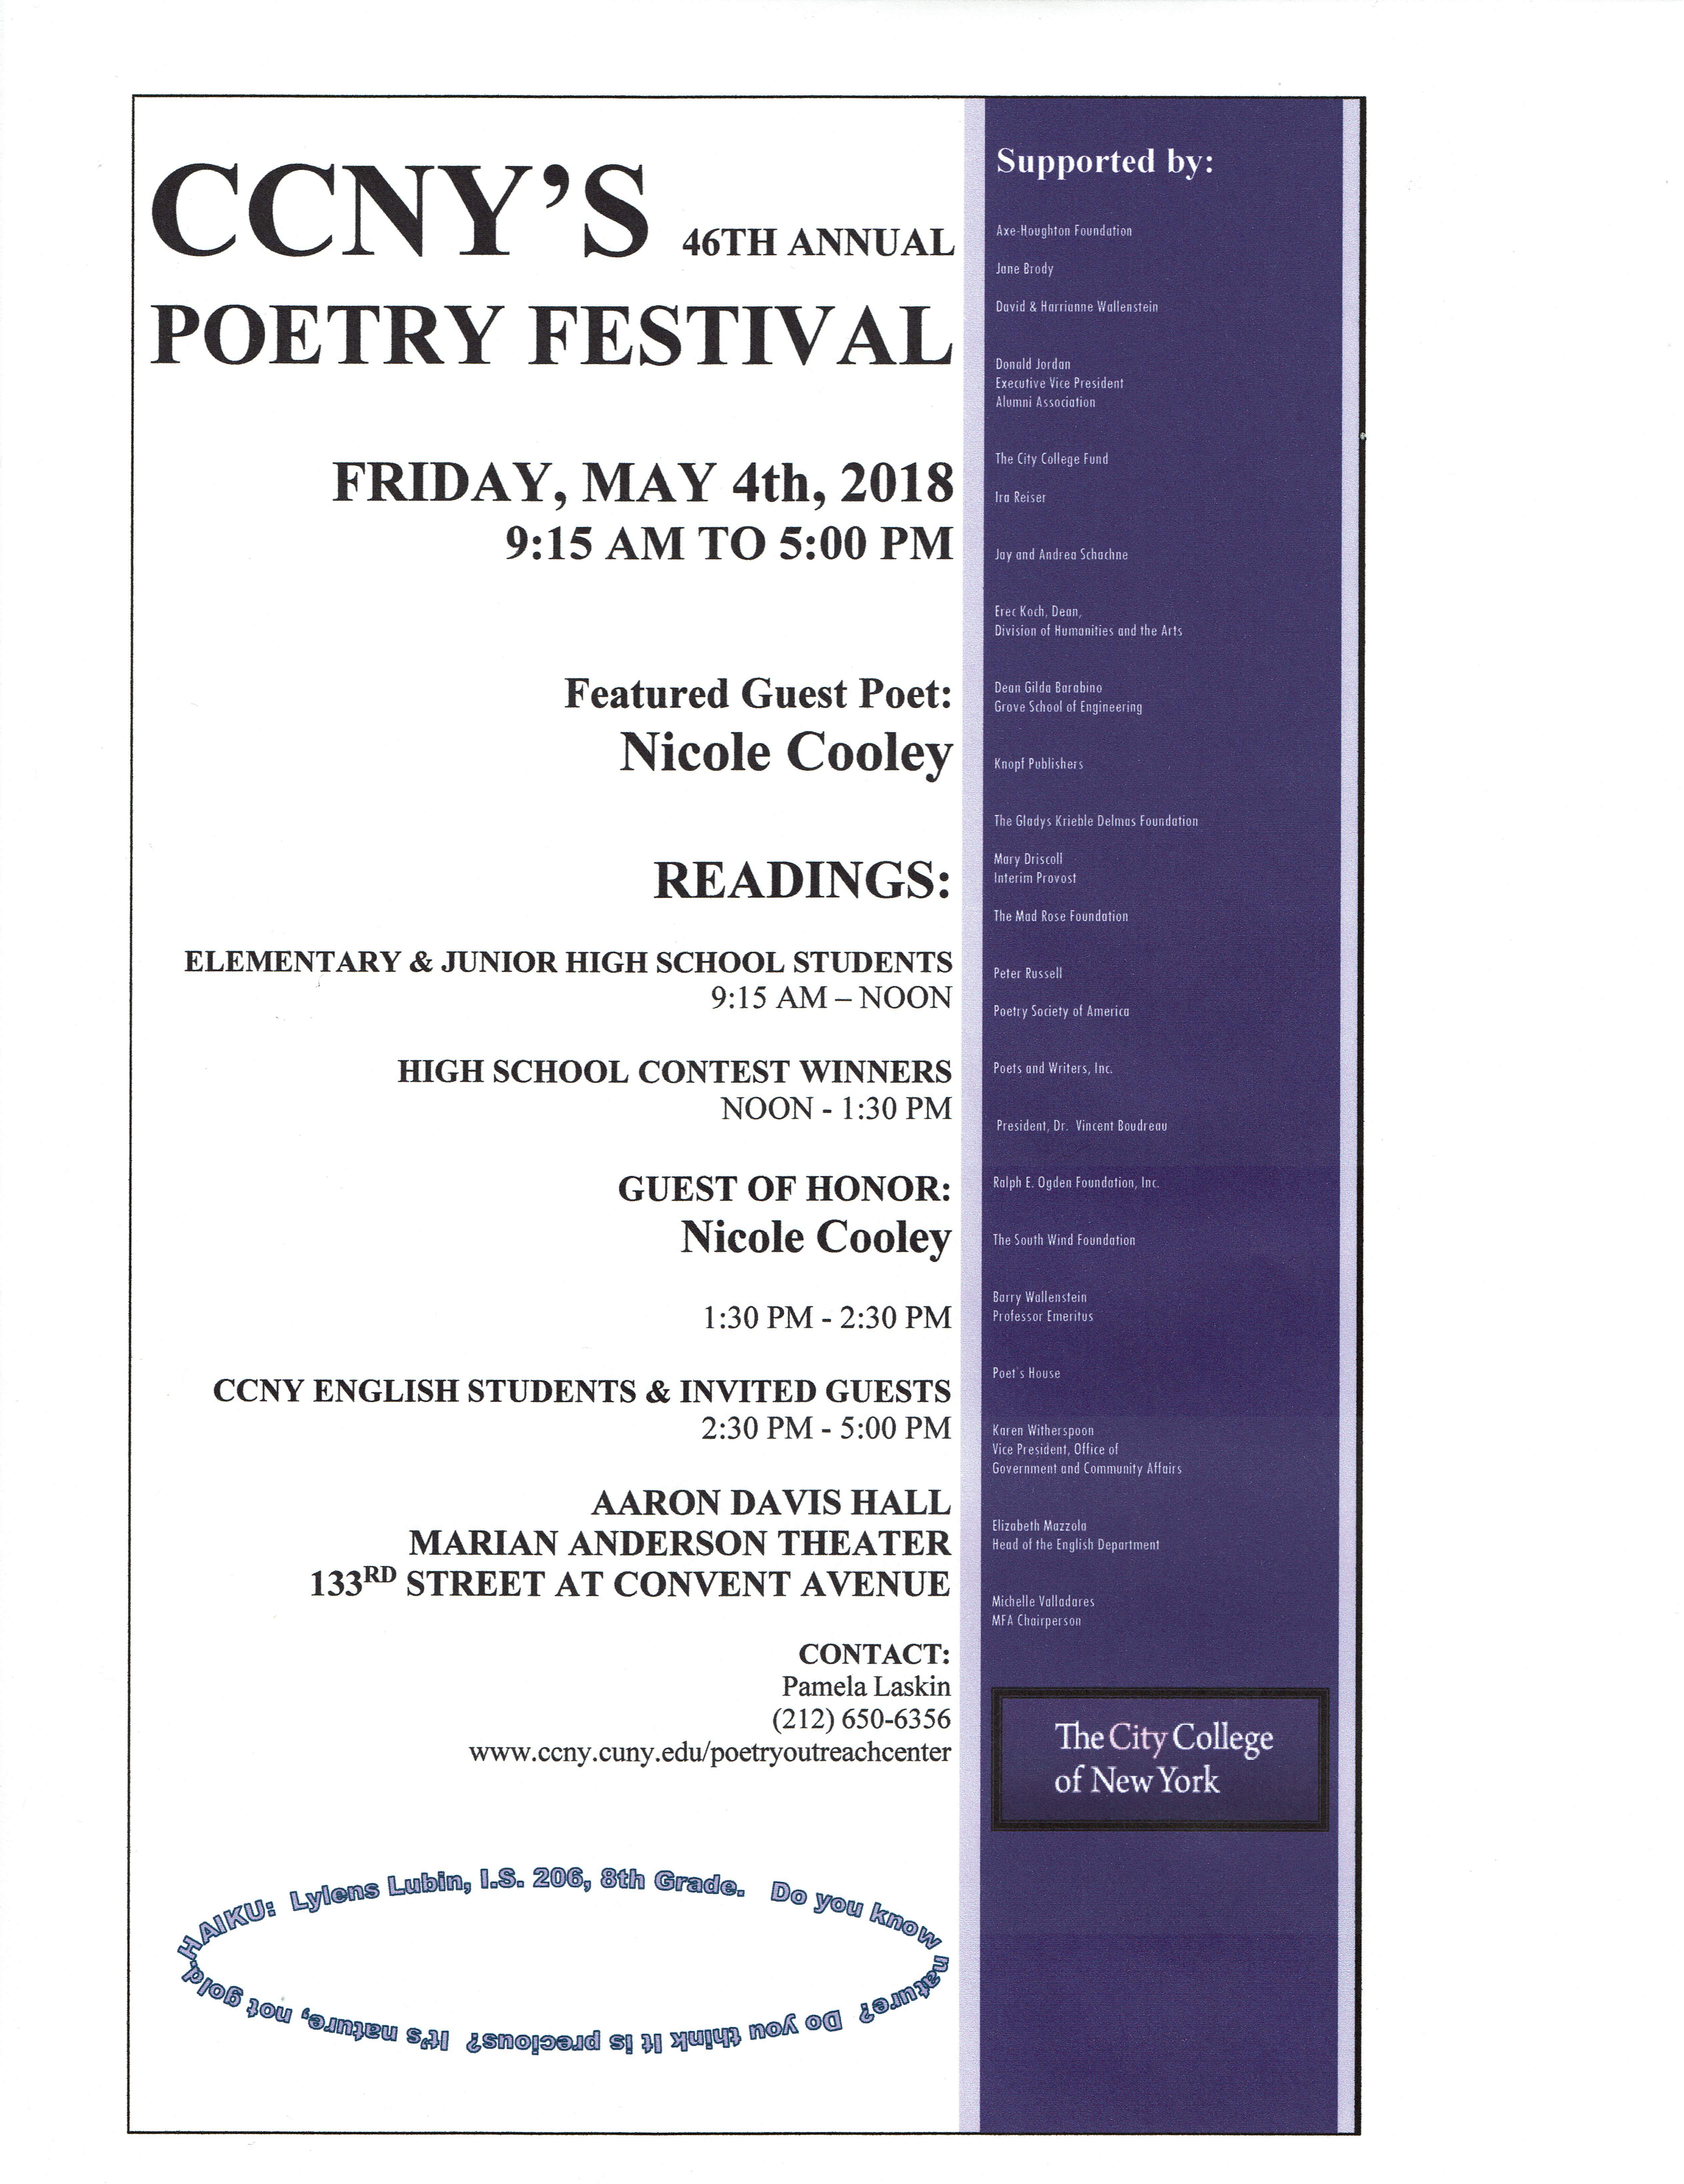 CCNY POETRY POSTER 2018 SCAN.jpg